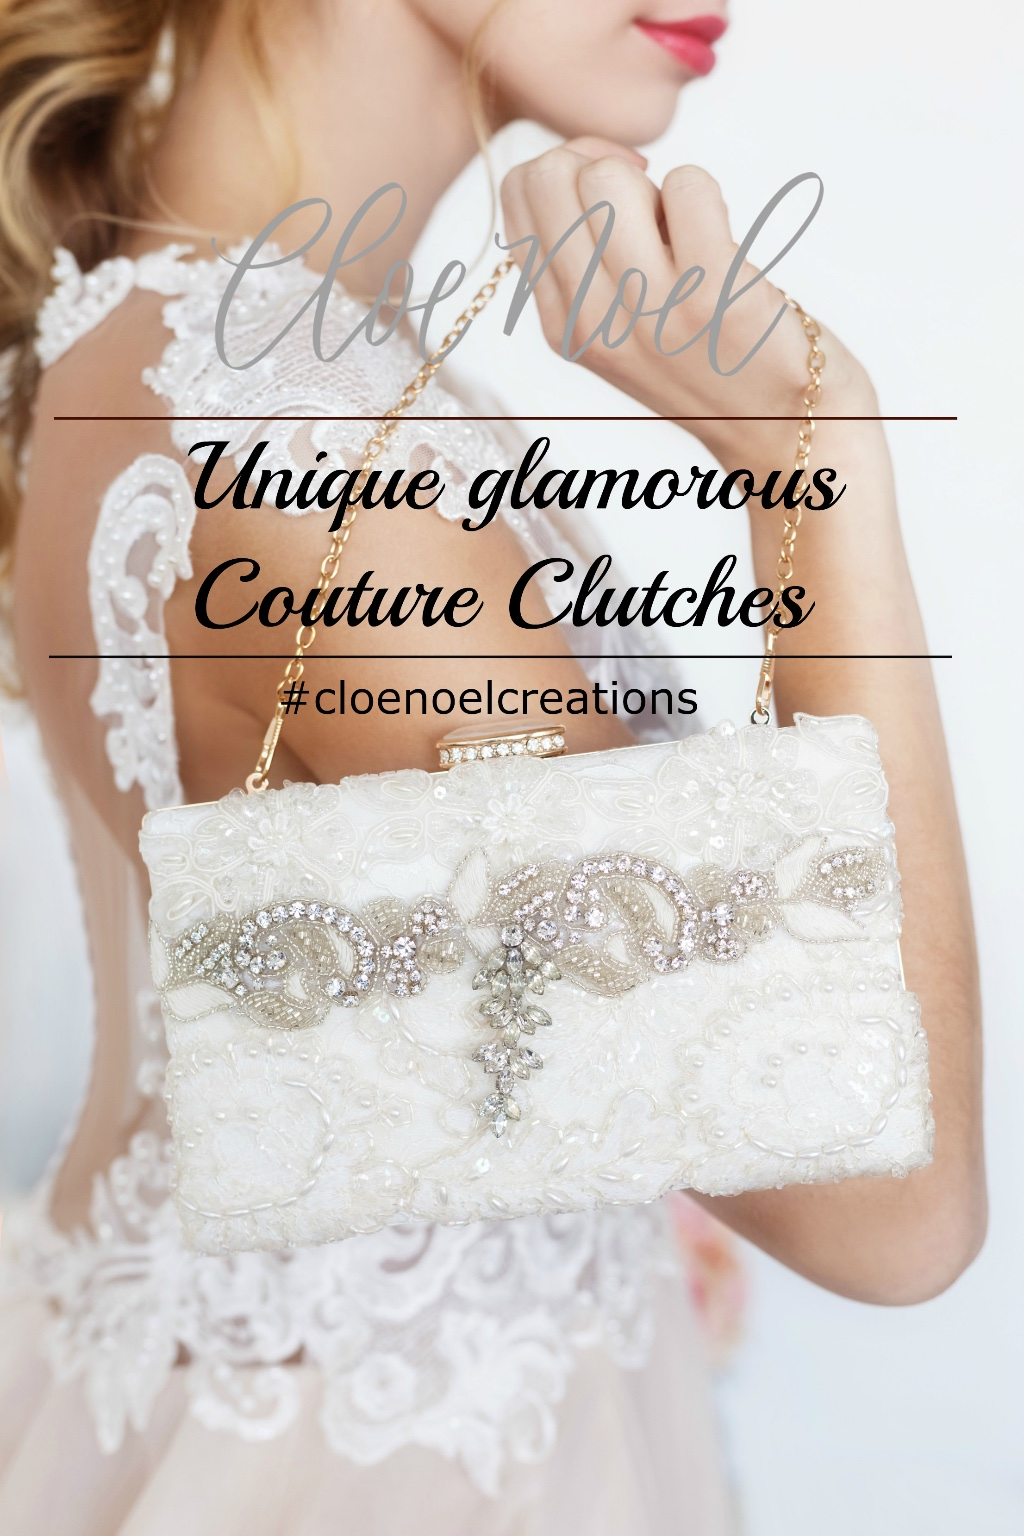 Unique and glamorous couture clutches that finish your bridal look